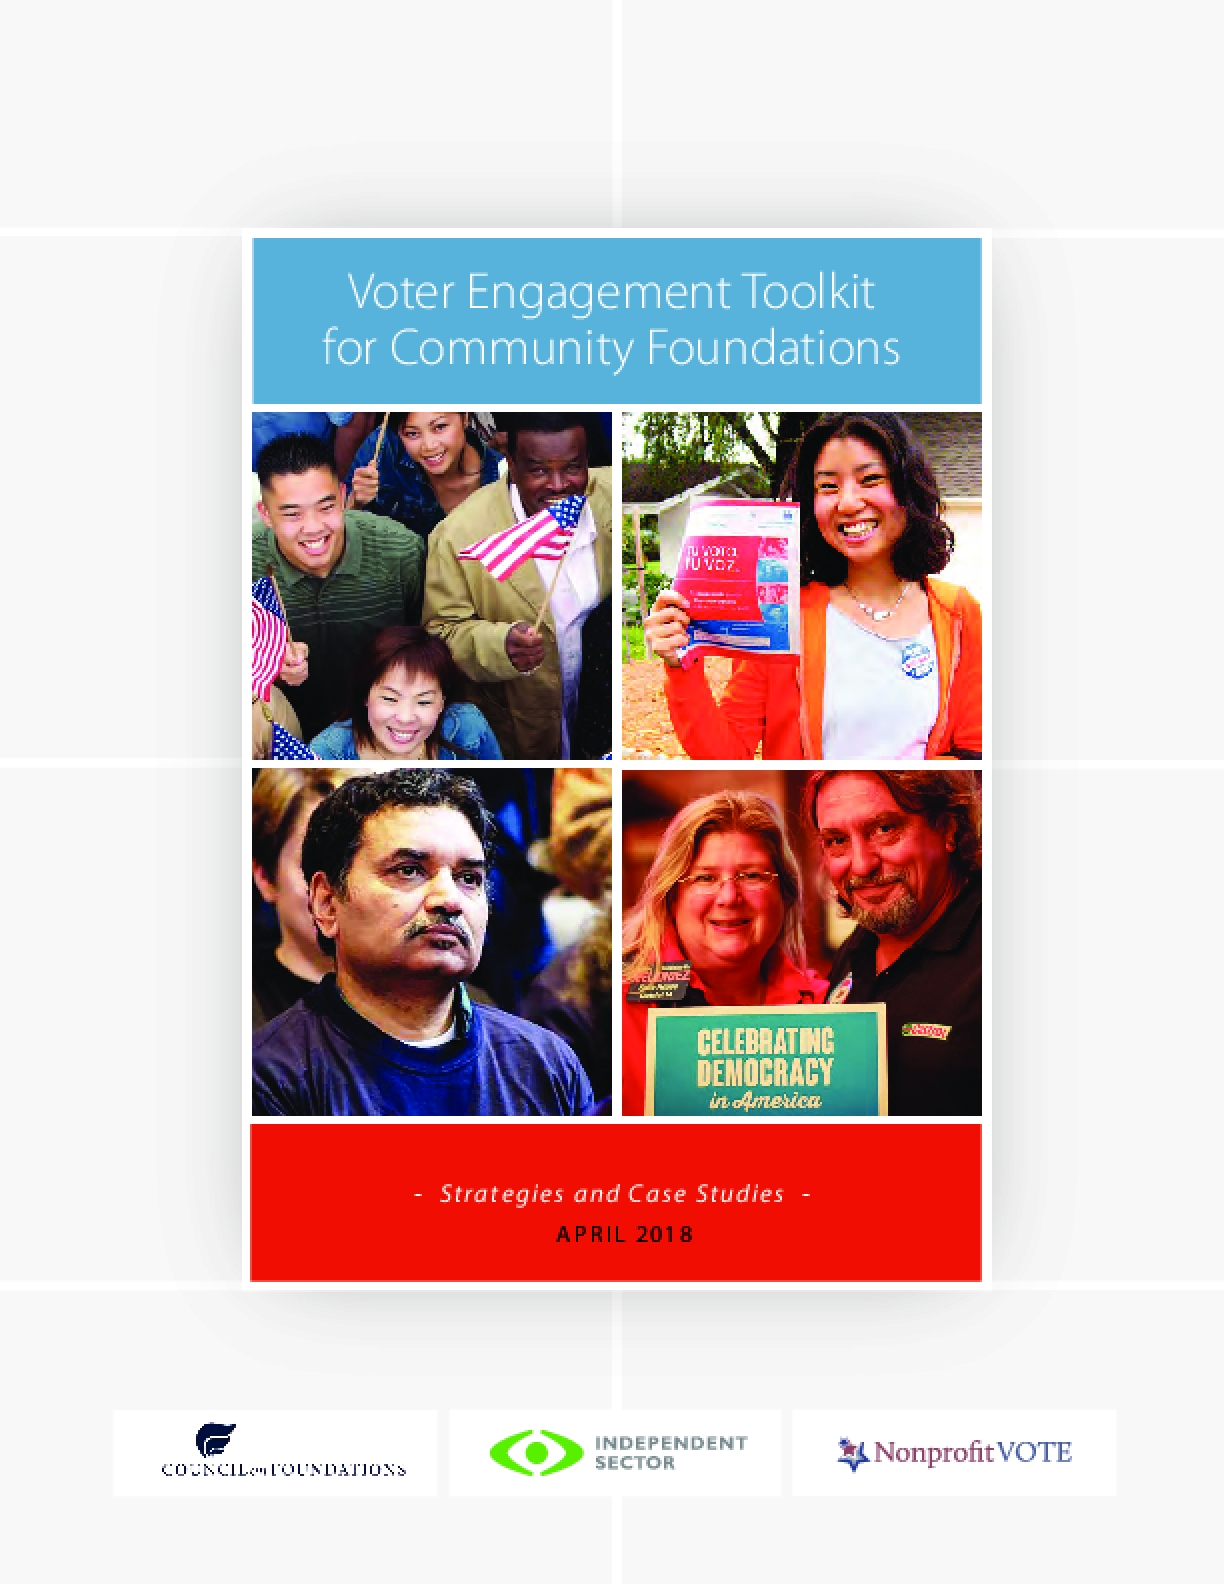 Voter Engagement Toolkit for Community Foundations